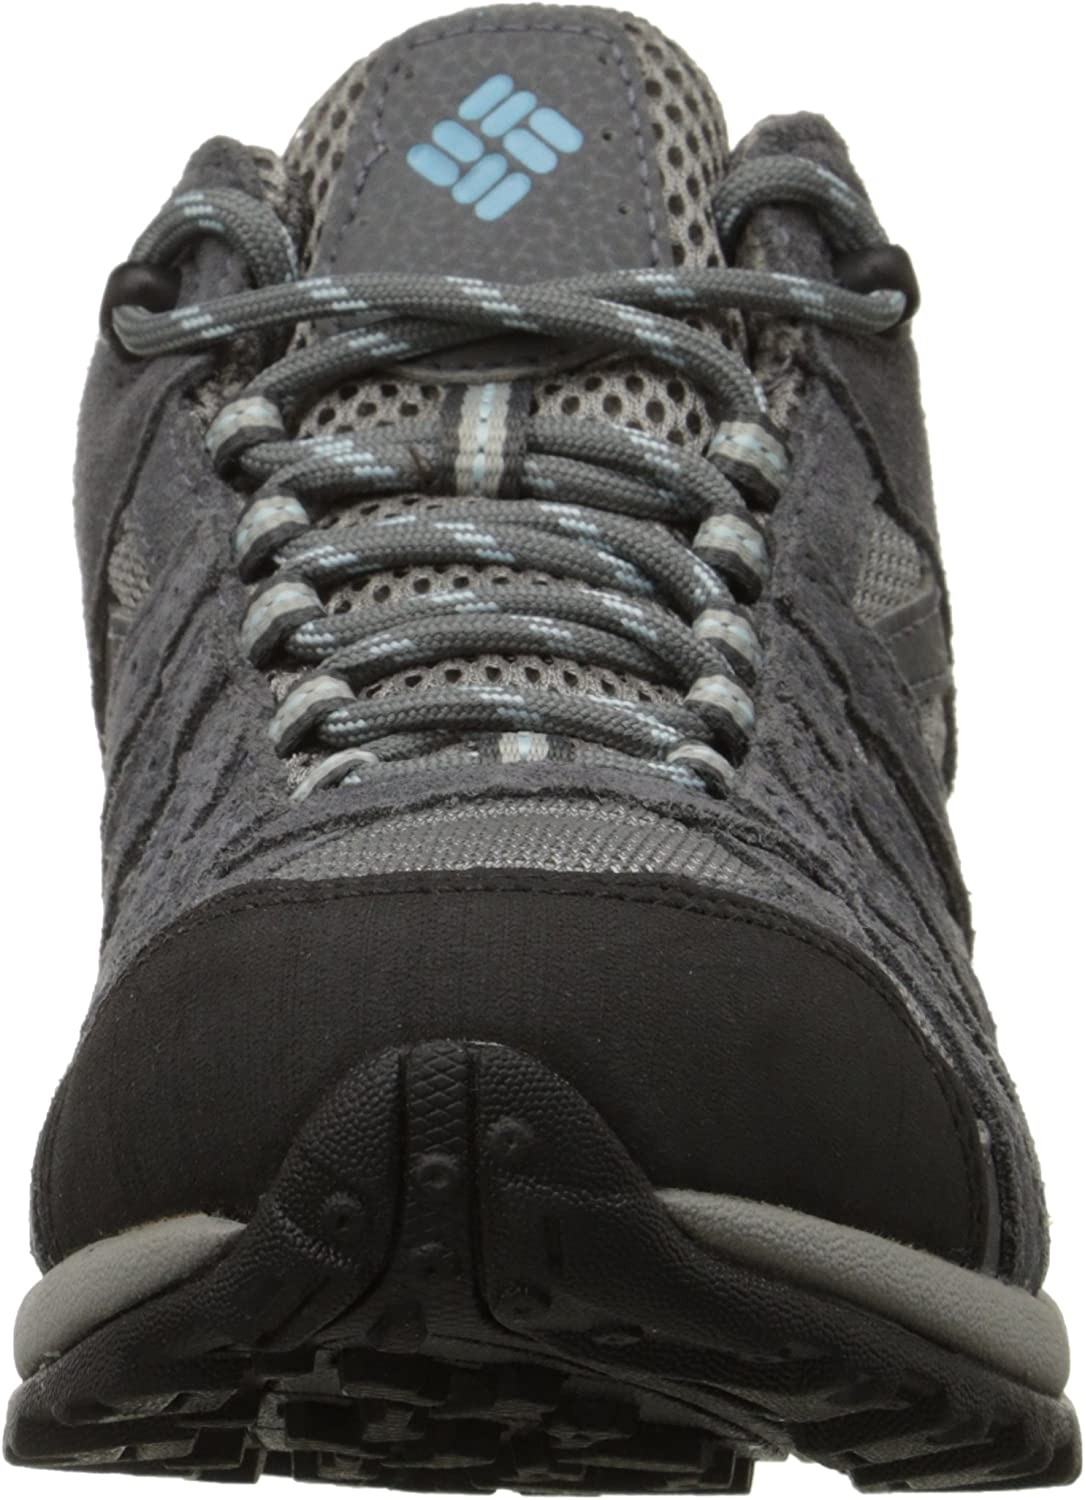 High-Traction Grip Columbia Womens Redmond Mid Waterproof Hiking Boot Breathable